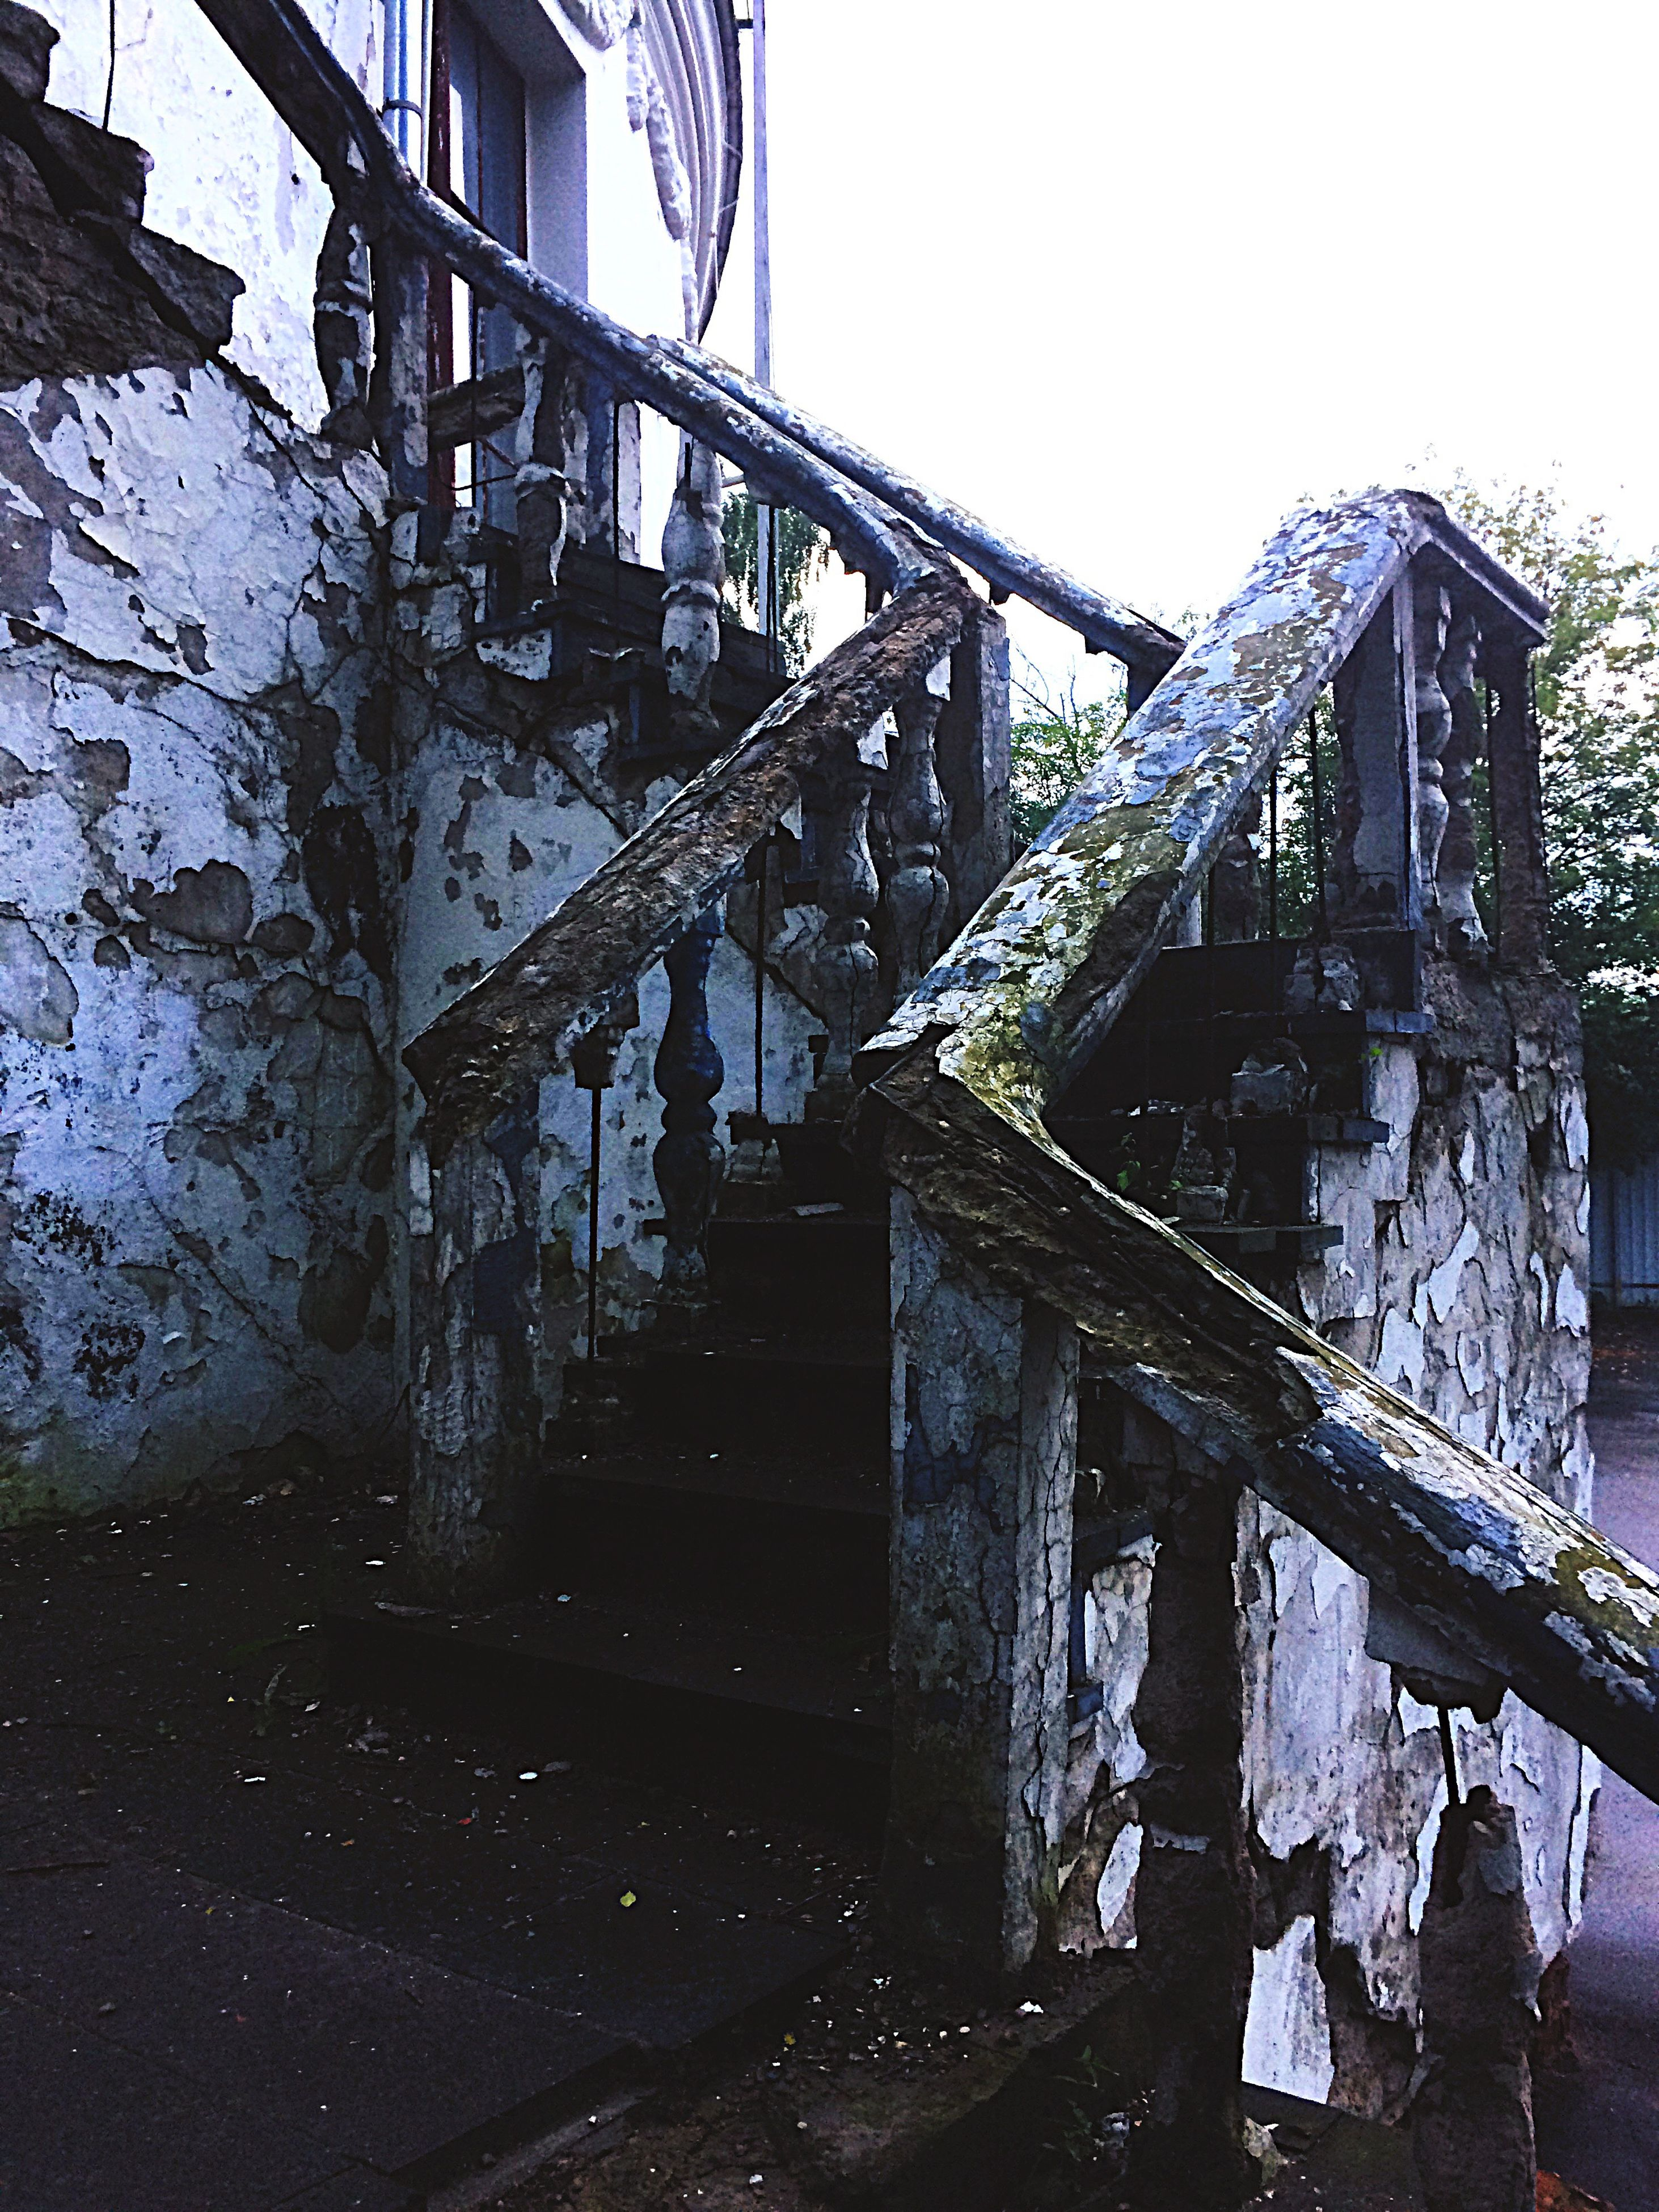 architecture, built structure, connection, bridge - man made structure, low angle view, wall - building feature, damaged, abandoned, clear sky, bridge, destruction, weathered, railing, deterioration, obsolete, building exterior, footbridge, bad condition, day, sky, demolished, outdoors, engineering, no people, messy